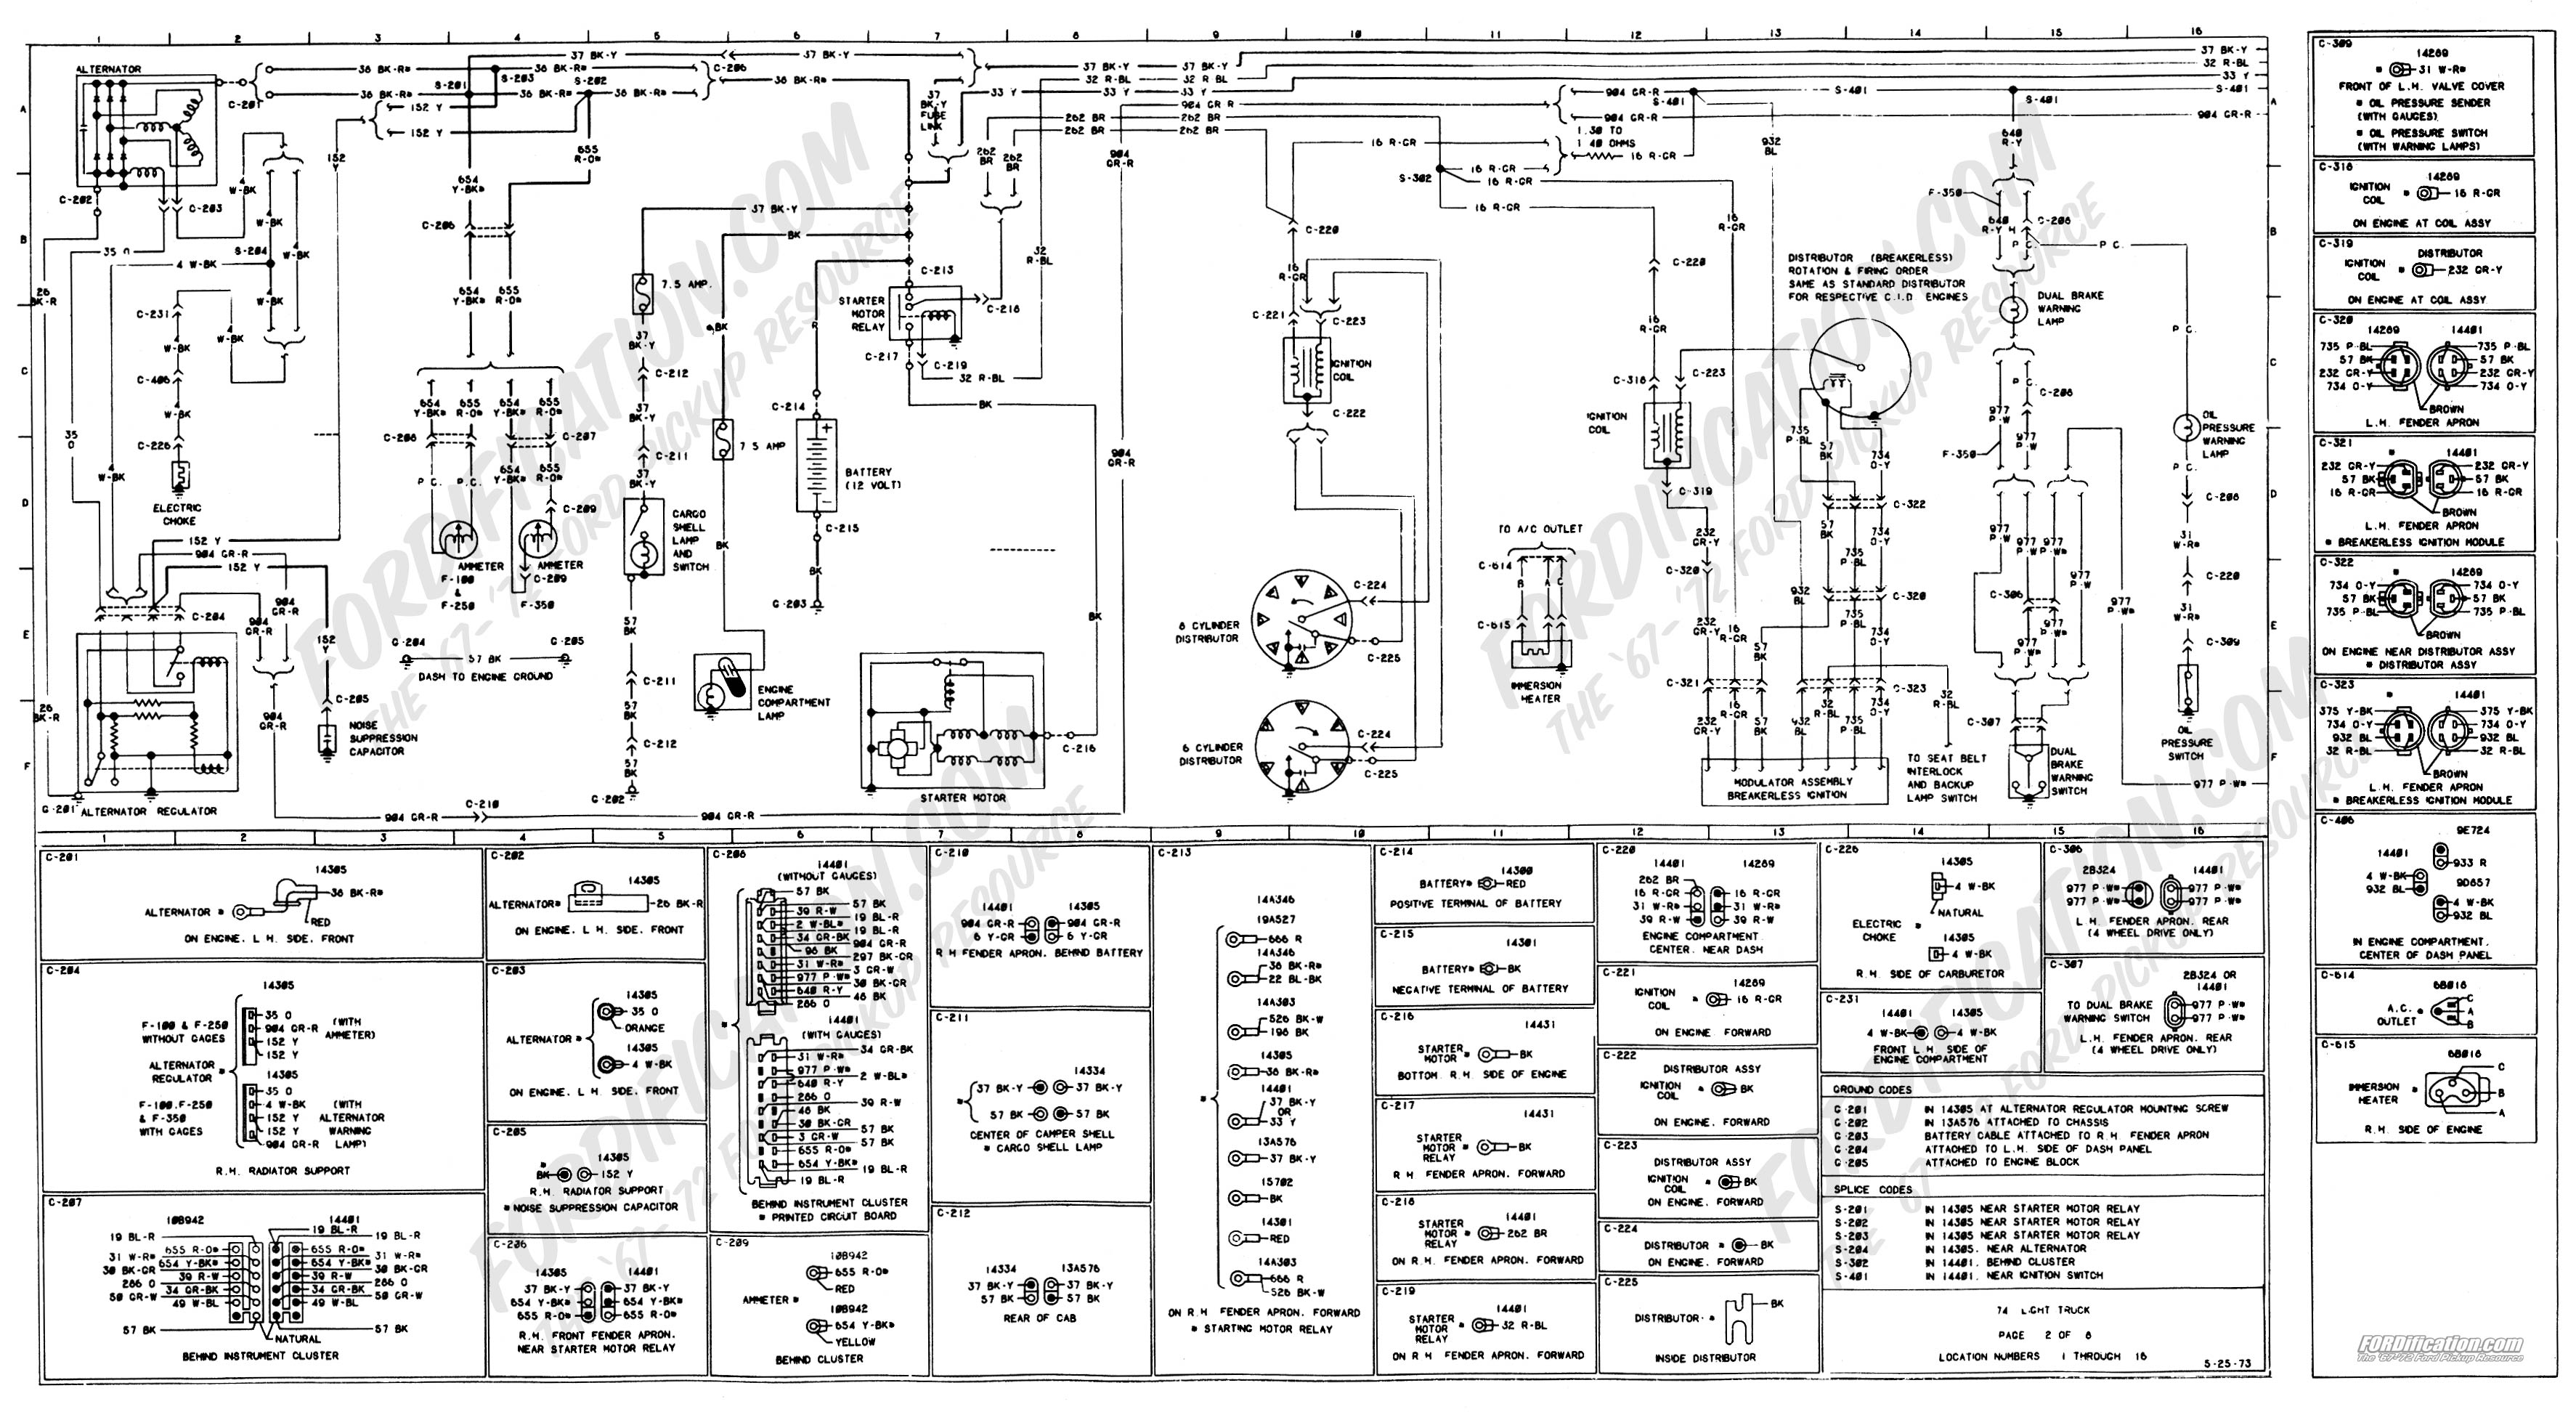 Tremendous 1978 Ford Pickup Wiring Diagram Wiring Diagram Libraries Wiring Cloud Inklaidewilluminateatxorg